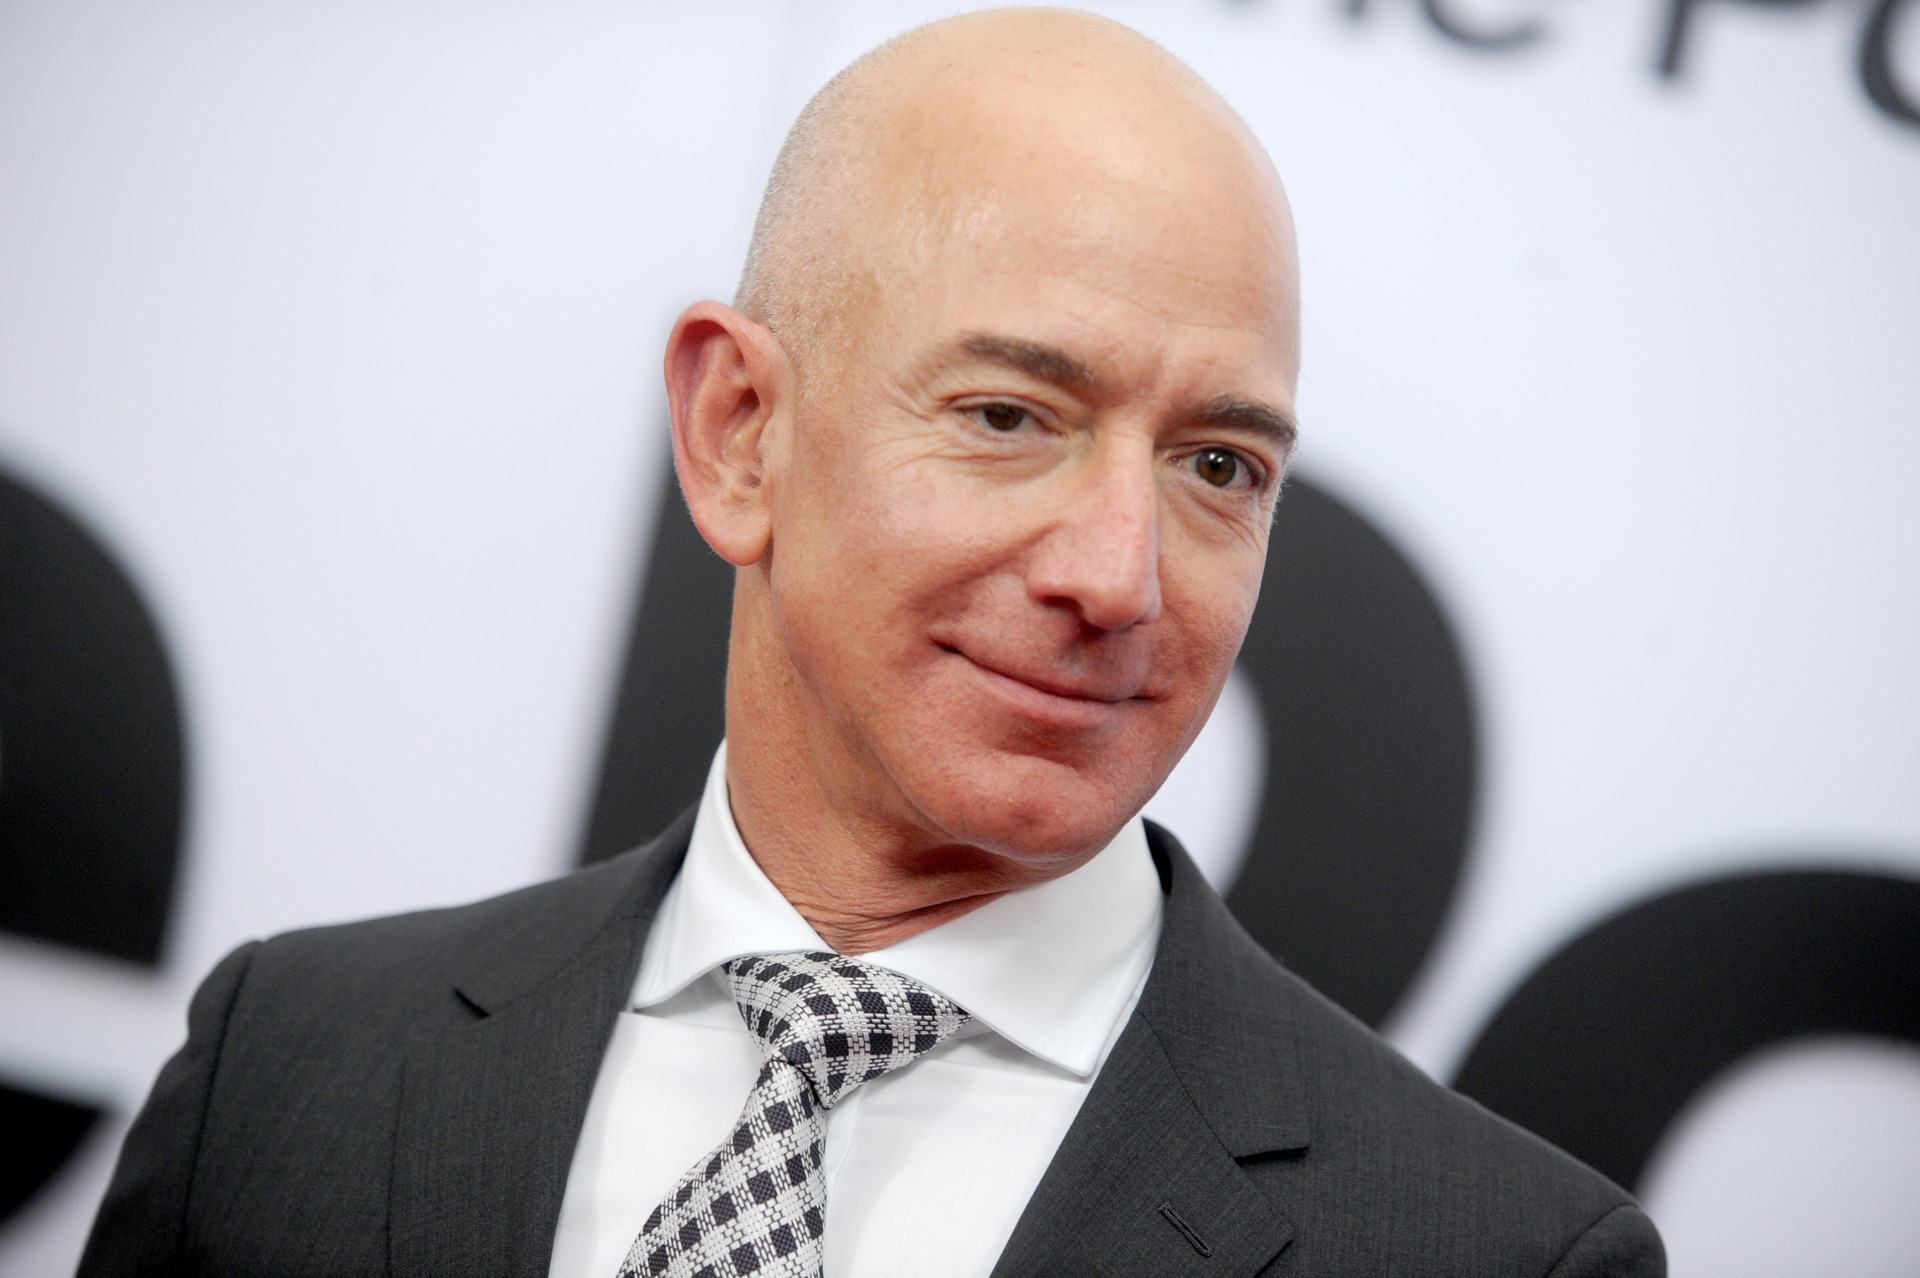 Amazon paid no federal taxes in the US despite earning more than $16 billion profit